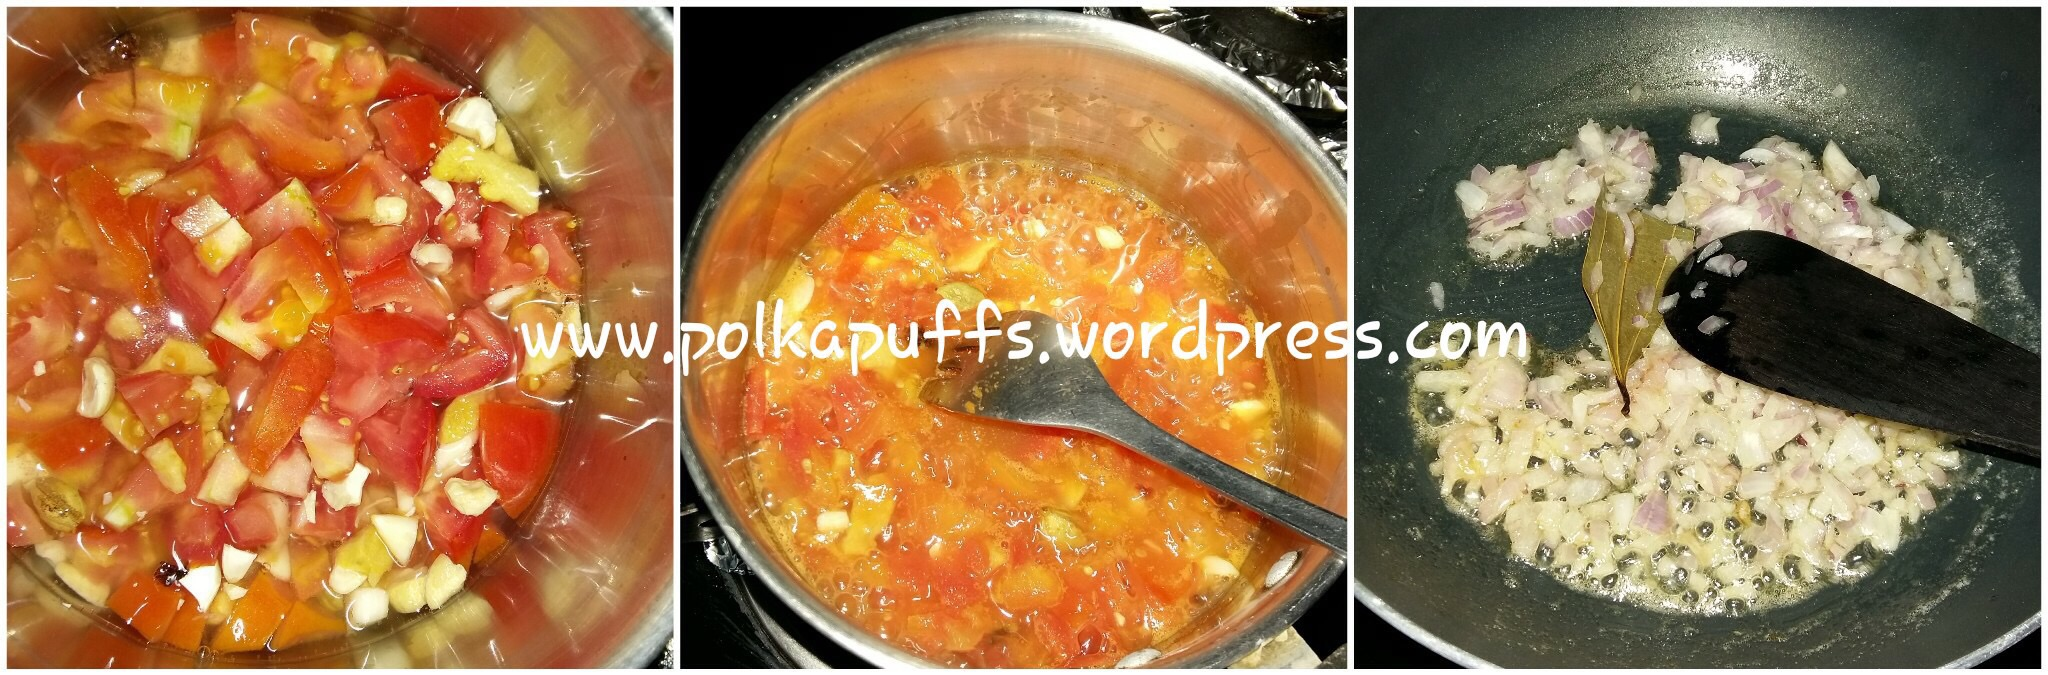 Paneer recipes archives polka puffs paneer lababdar recipe how to make restaurant style paneer lababdar tava naan recipe wholewheat tava naan forumfinder Images